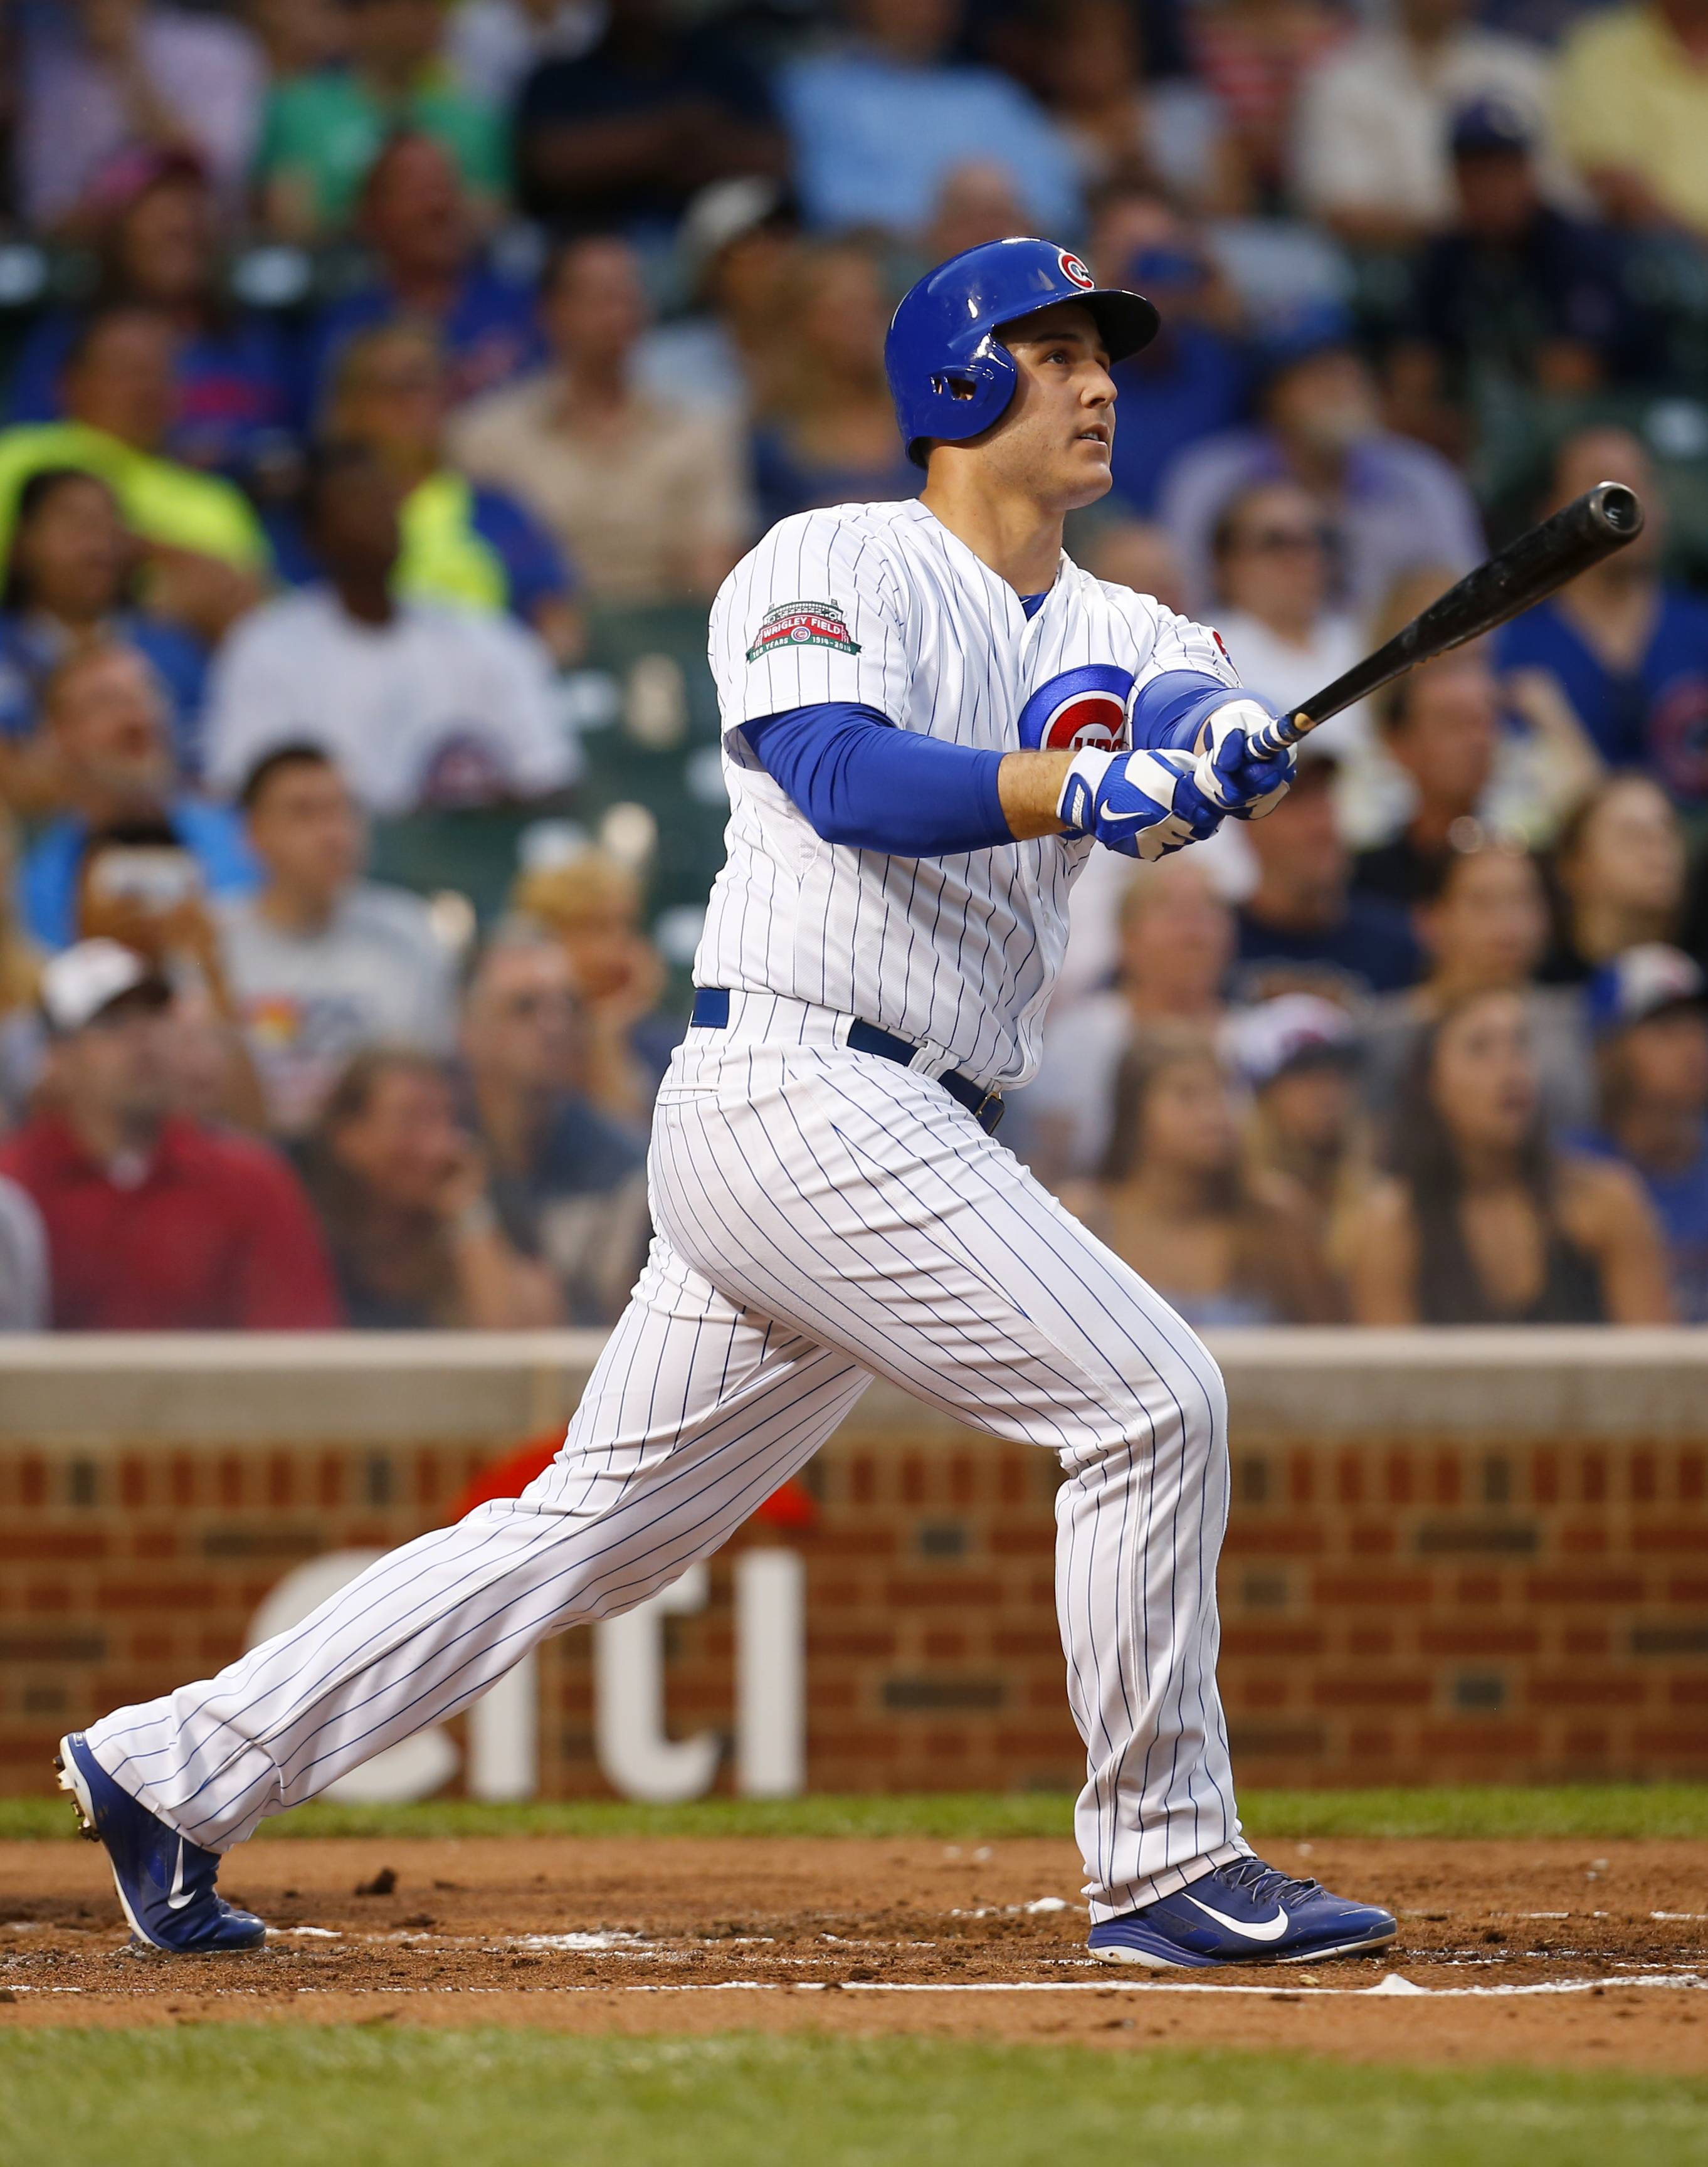 Cubs' Anthony Rizzo watches his two-run home run during the first inning of a baseball game against San Francisco Giants in Chicago, Tuesday, Aug. 19, 2014.